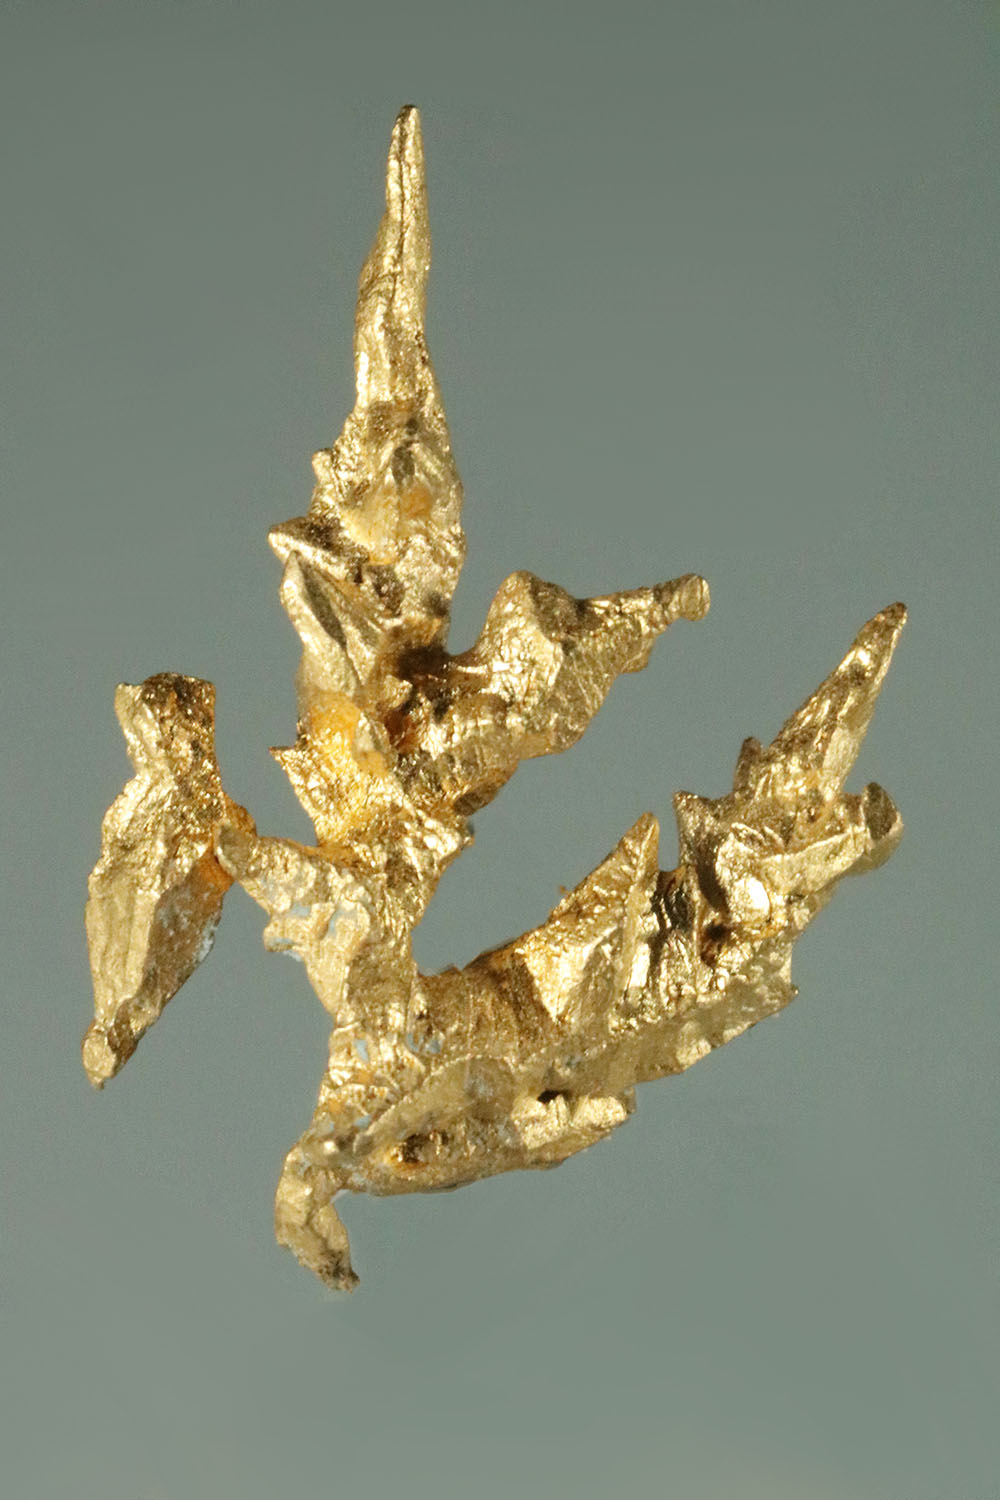 Natural Faceted and Sharp Venezuela Gold Crystal